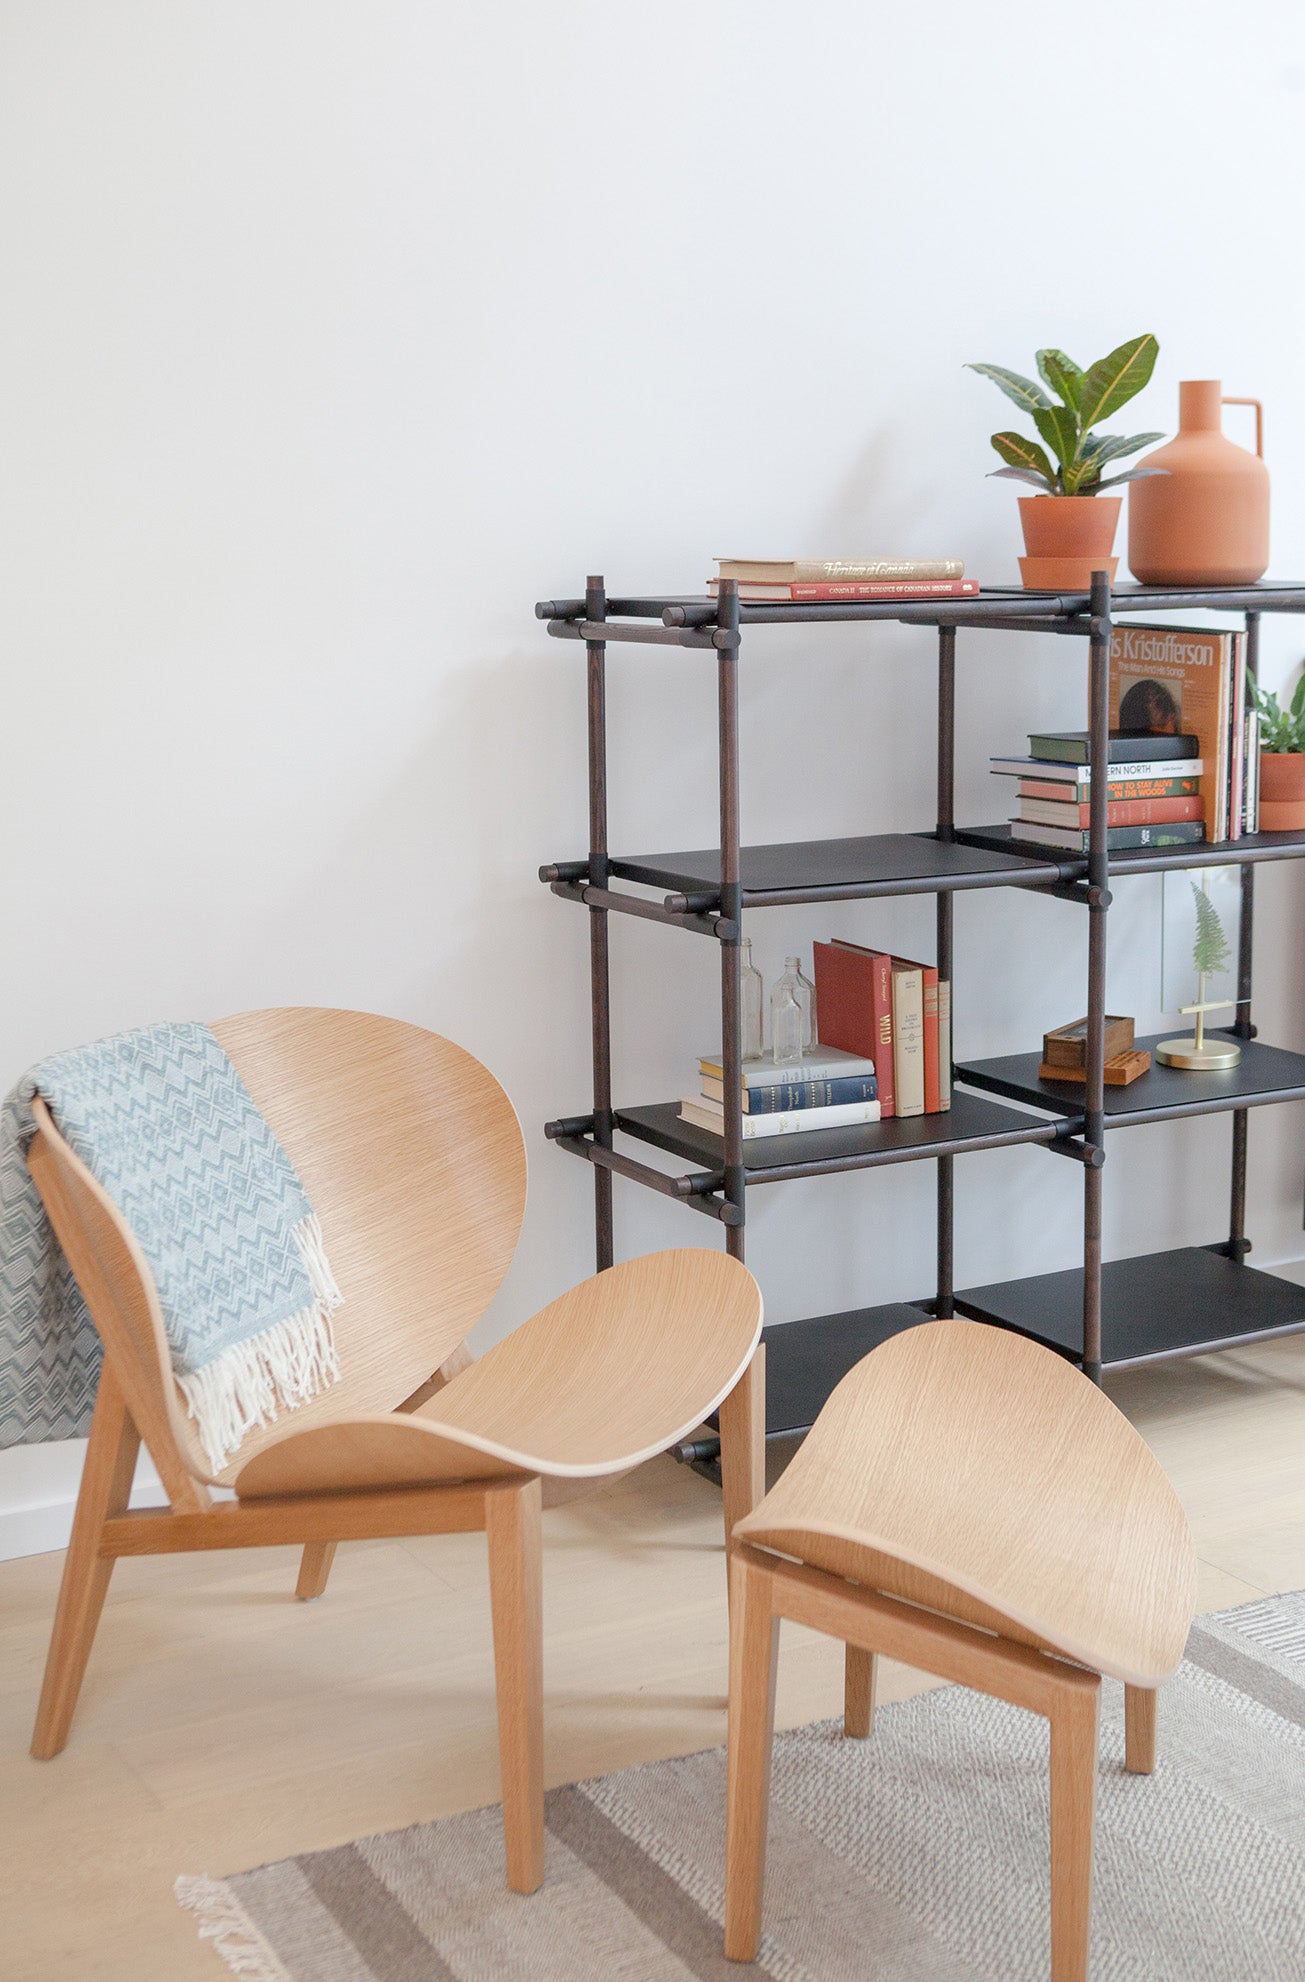 Scandinavian arm chair with stool and scaffolding shelving unit